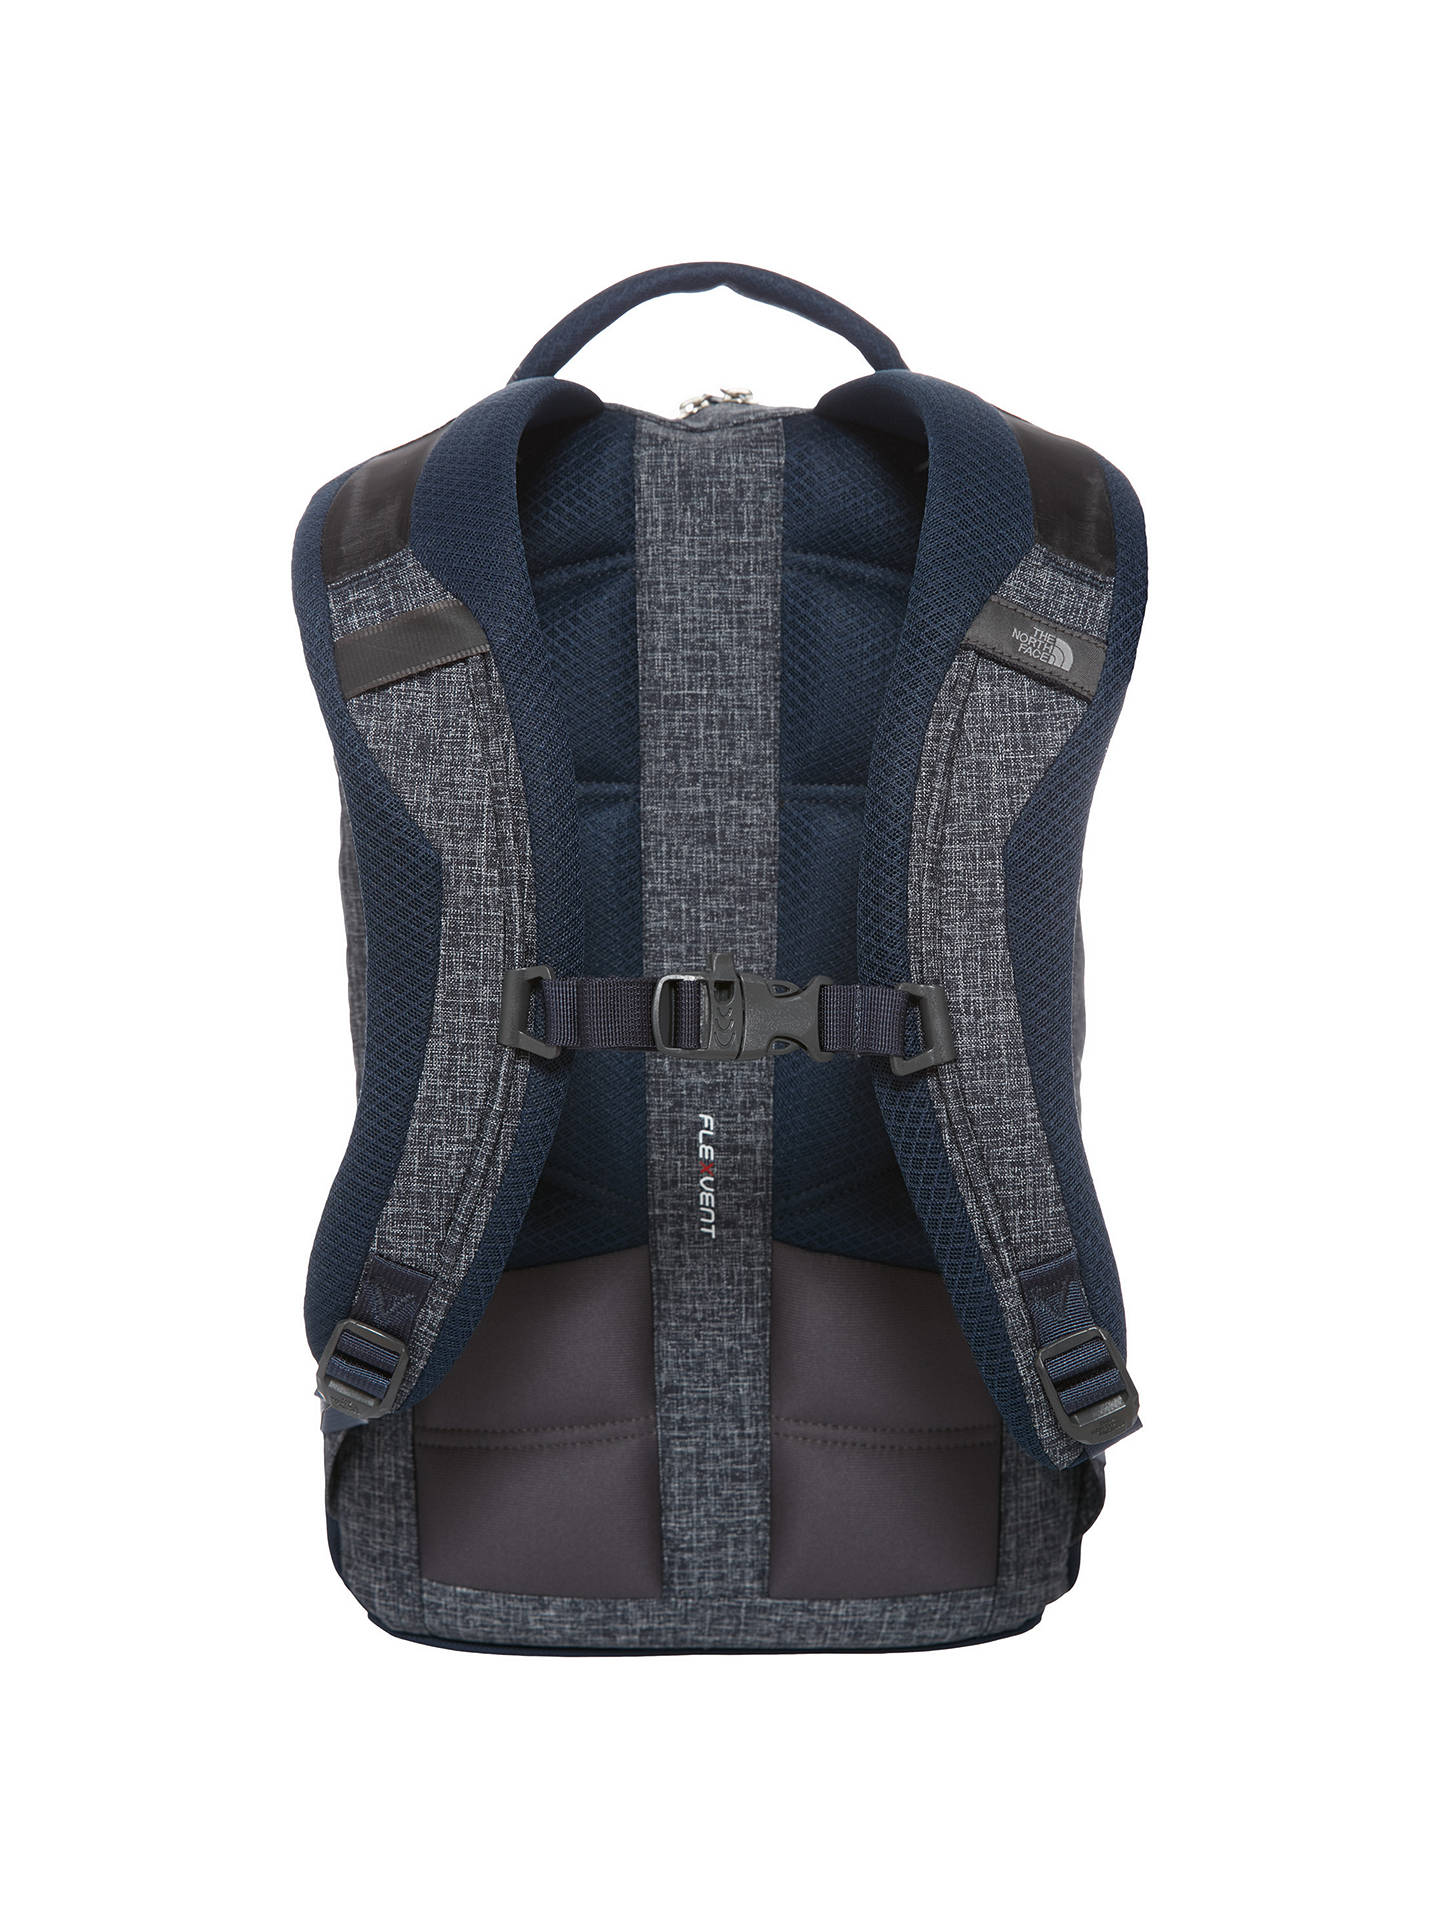 5a4df8b59 The North Face Microbyte Backpack, Navy/Grey at John Lewis & Partners